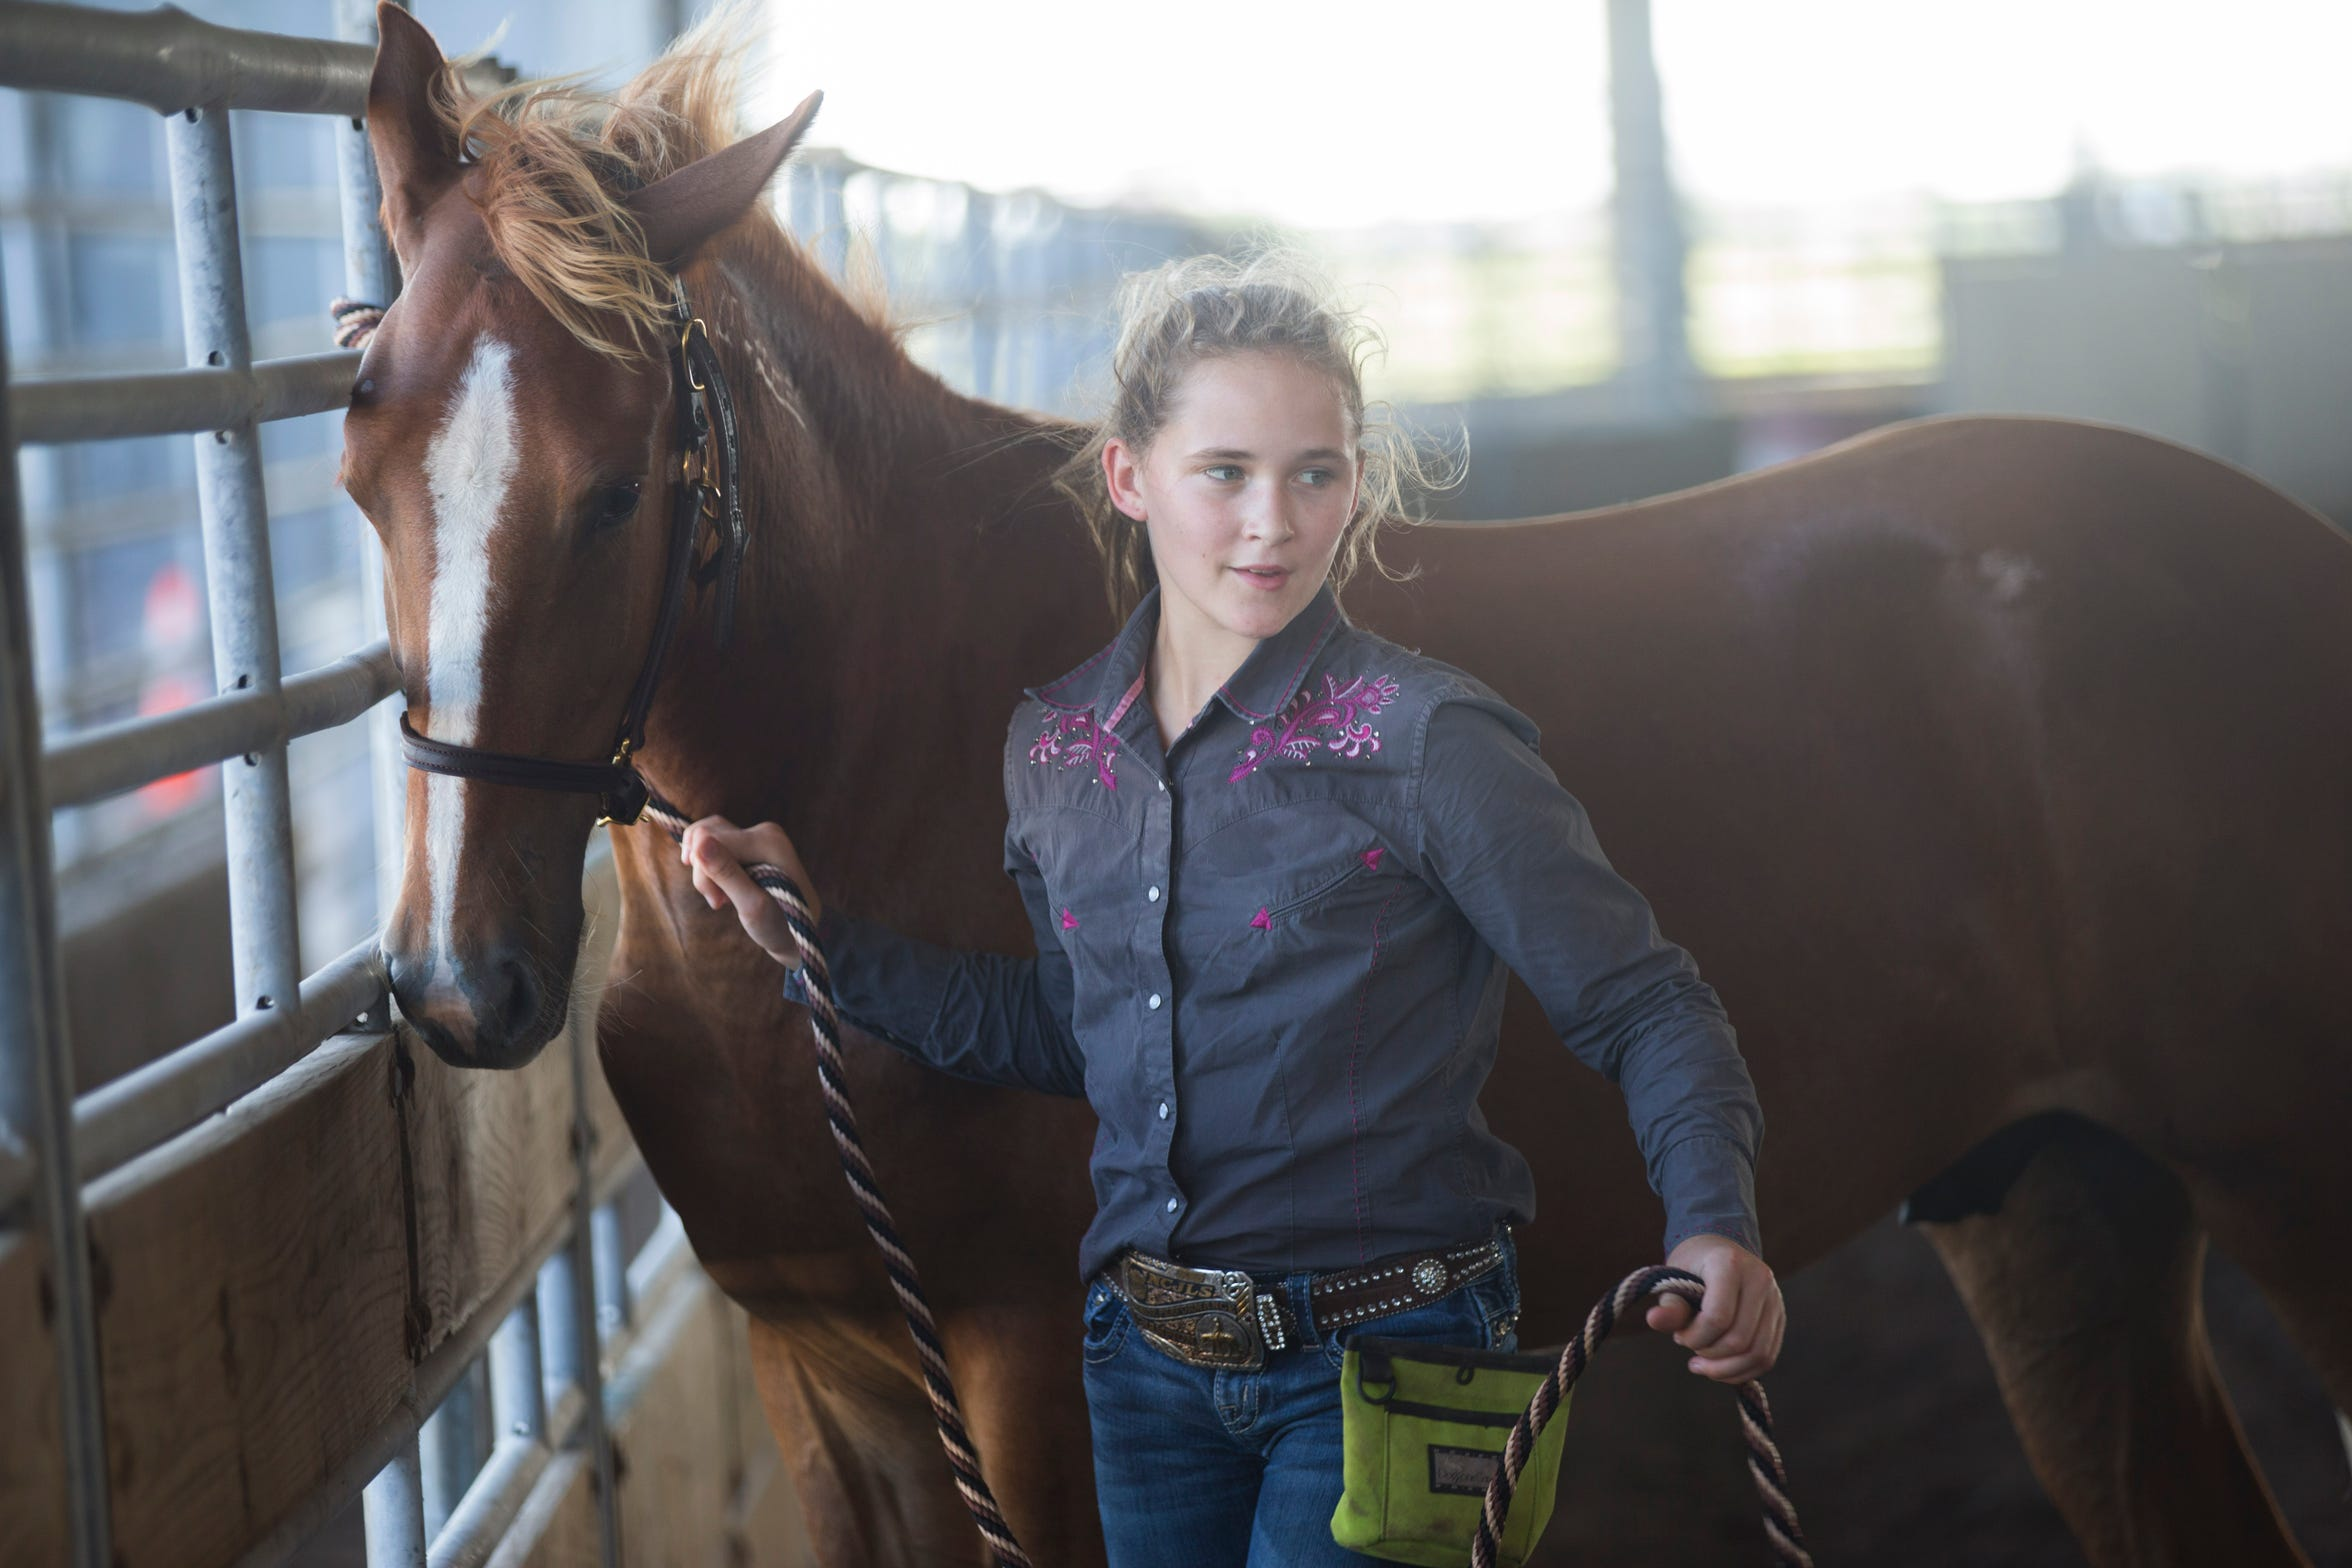 Francis Walsh, 11, works with her mustang at the Robstown fairgrounds to prepare for the junior division of the Extreme Mustang Makeover competition in Forth Worth.